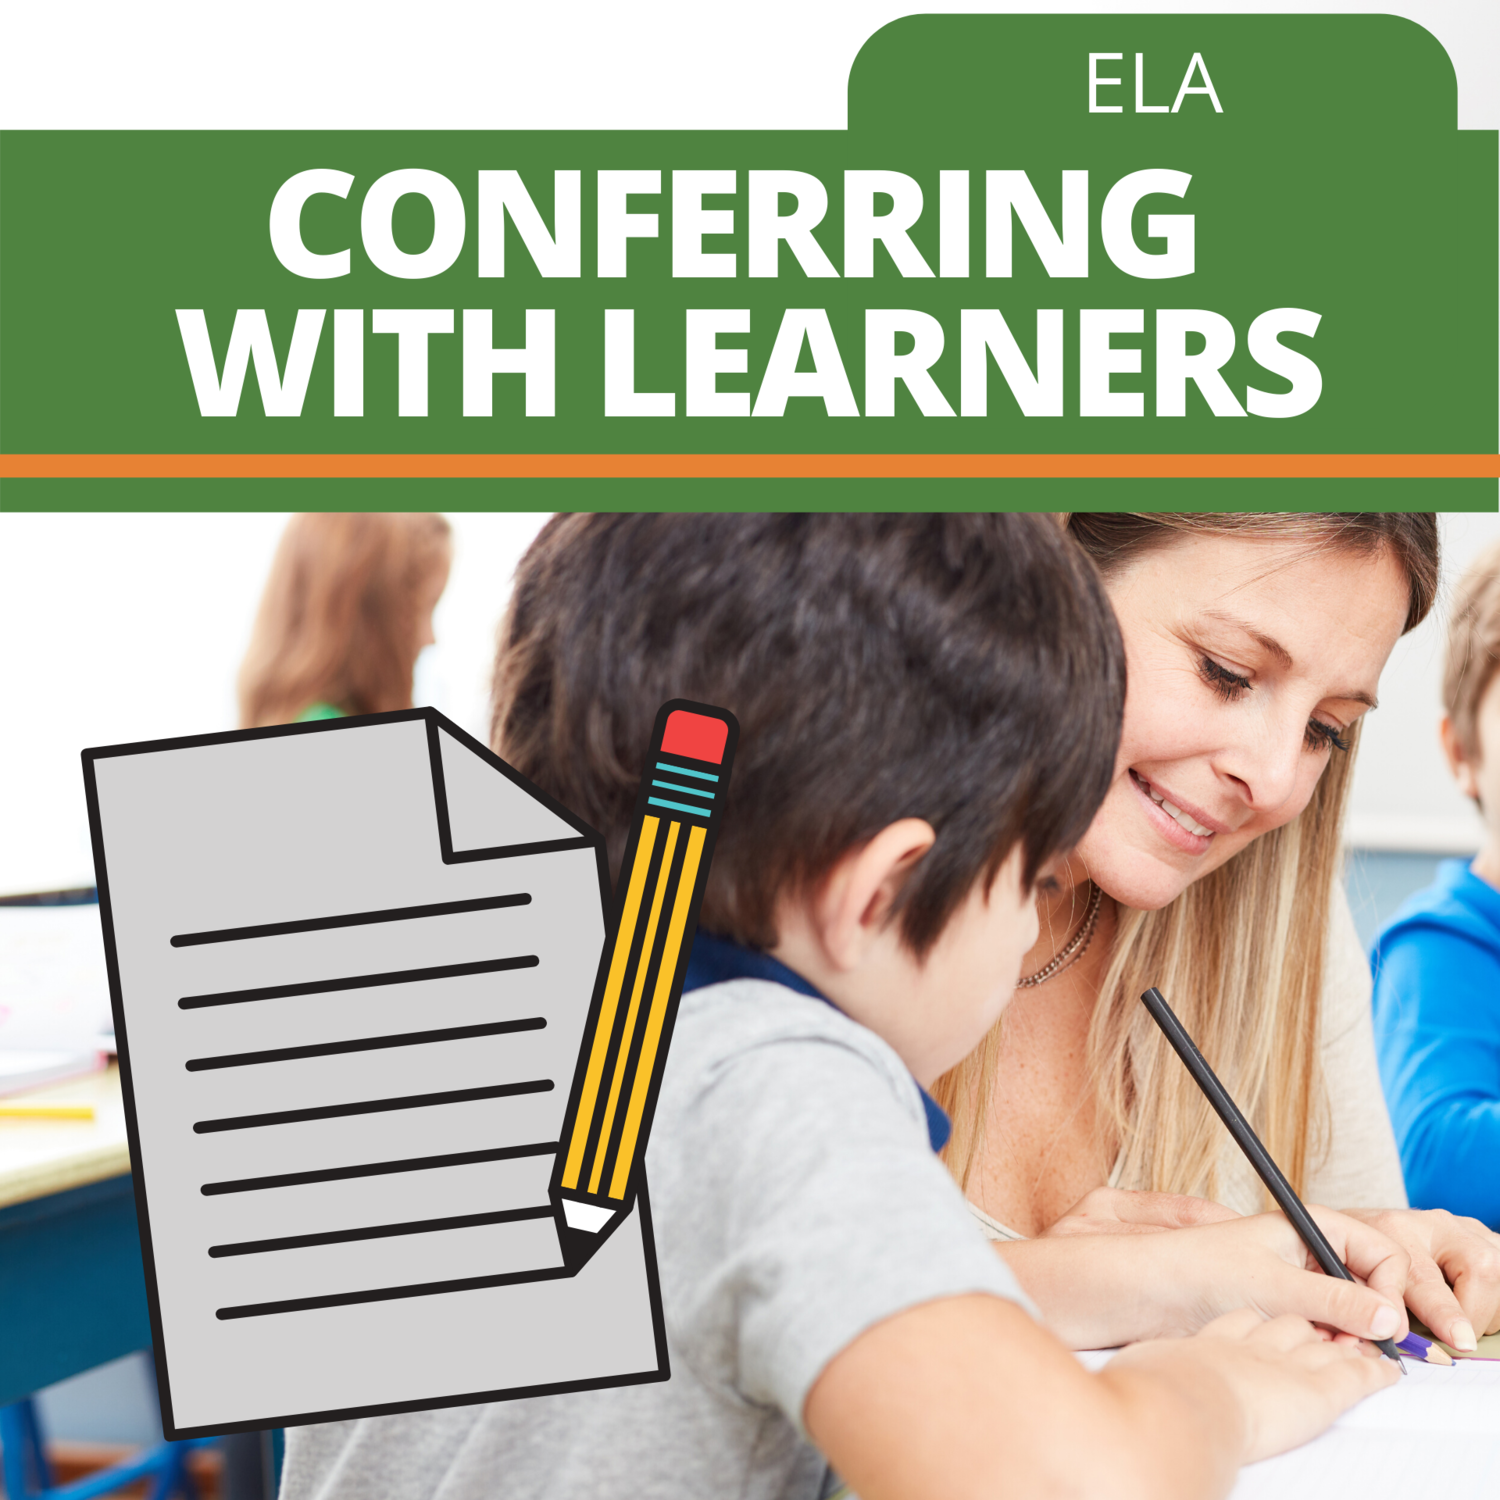 Conferring with Learners | Conferencing Guide: Everything you need to start one-to-one conferencing